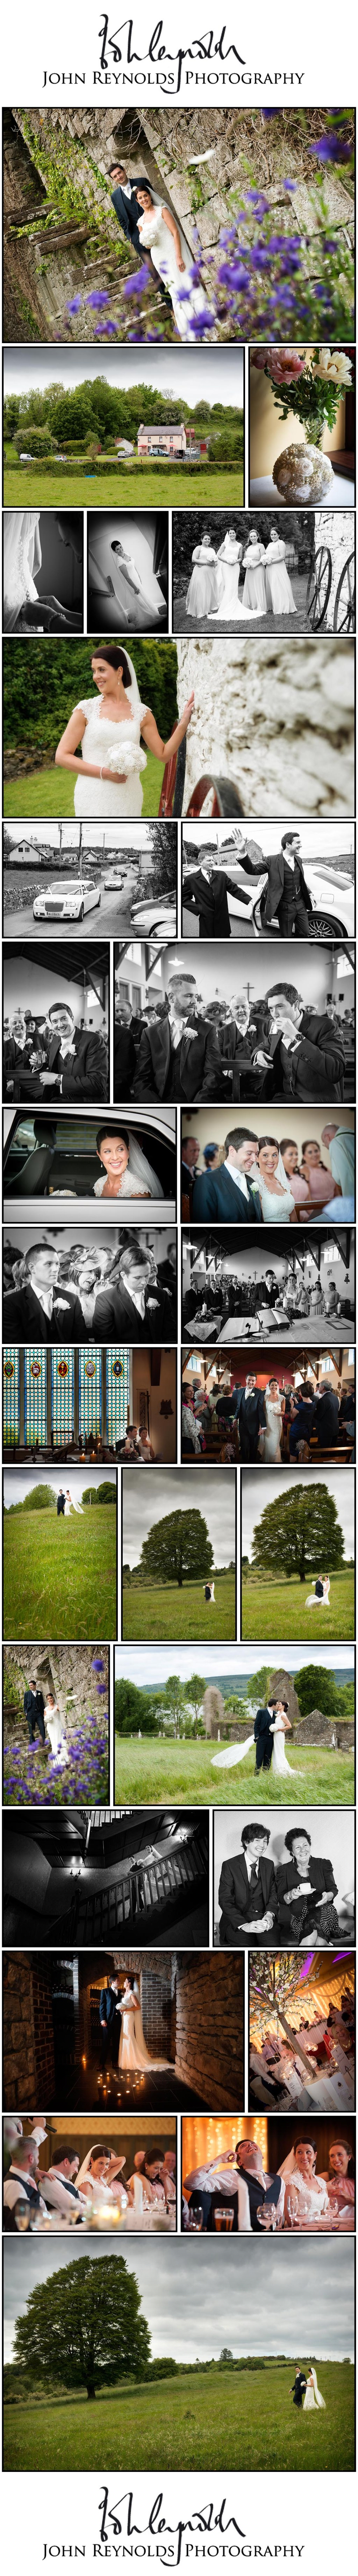 Blog Collage-Valerie & Daragh